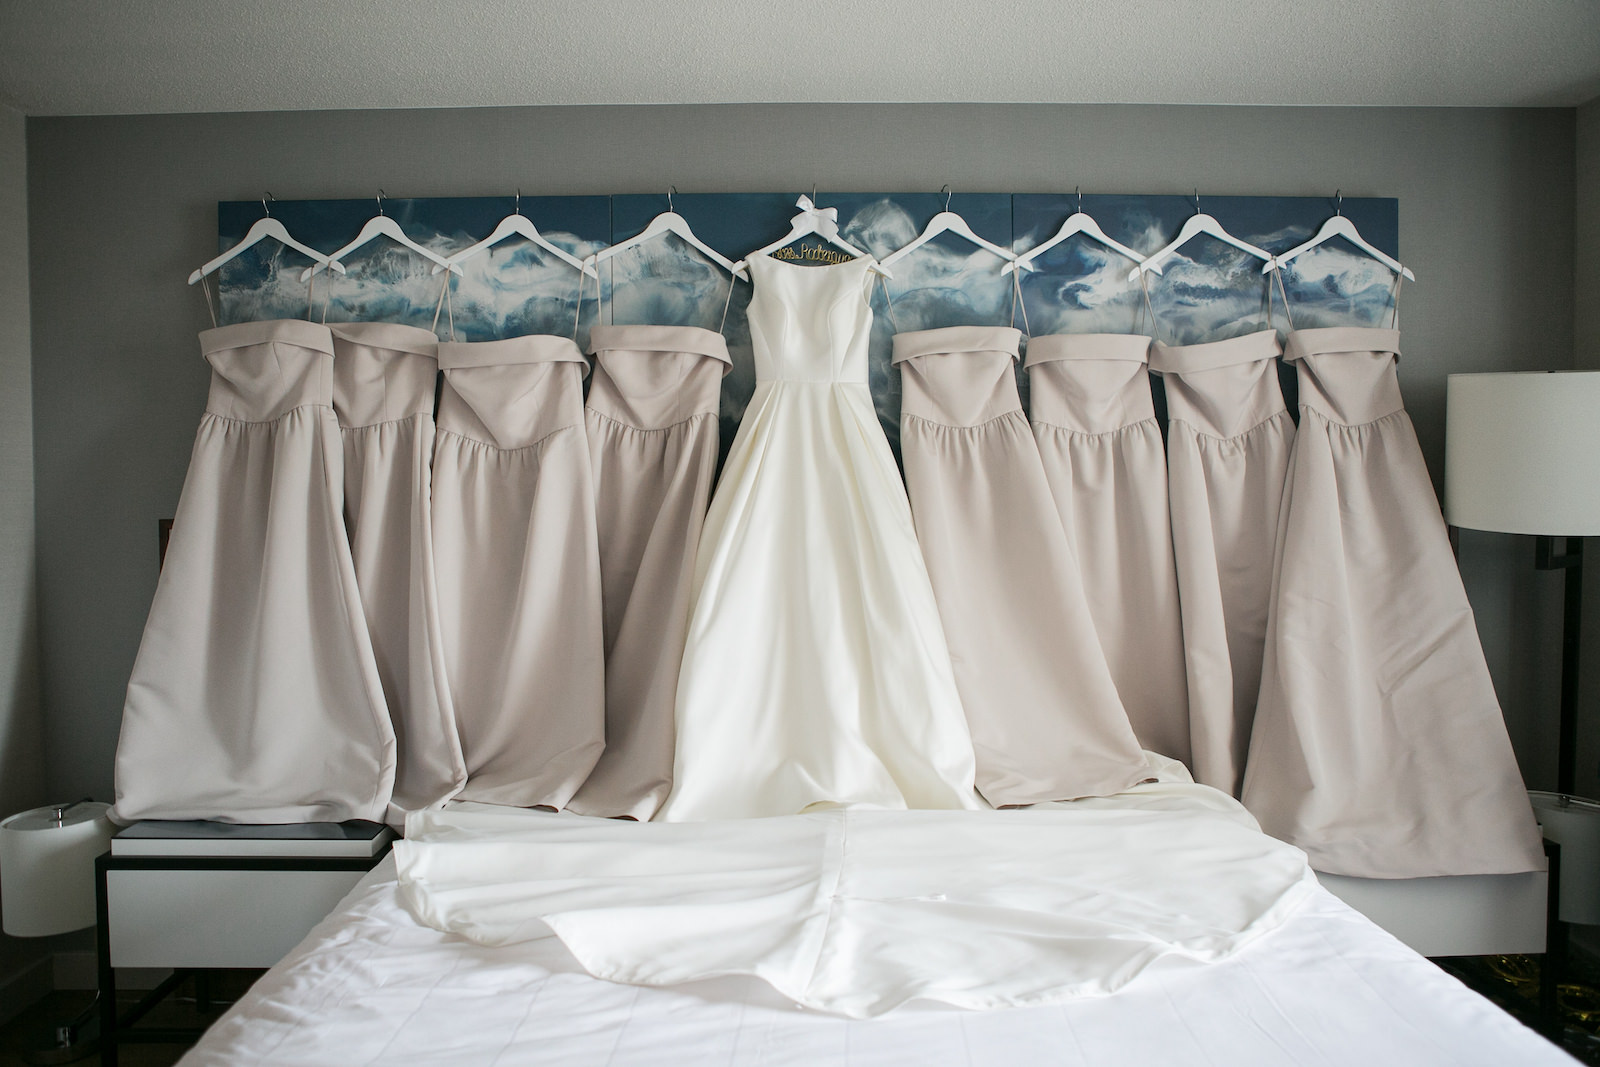 Wedding Dress Hanger Shot | Bateau Neck Mikado Satin Martina Liana Simple Elegant Wedding Dress with Buttons Down Back | Strapless Taupe Neutral Bridesmaid Dresses by Amsale